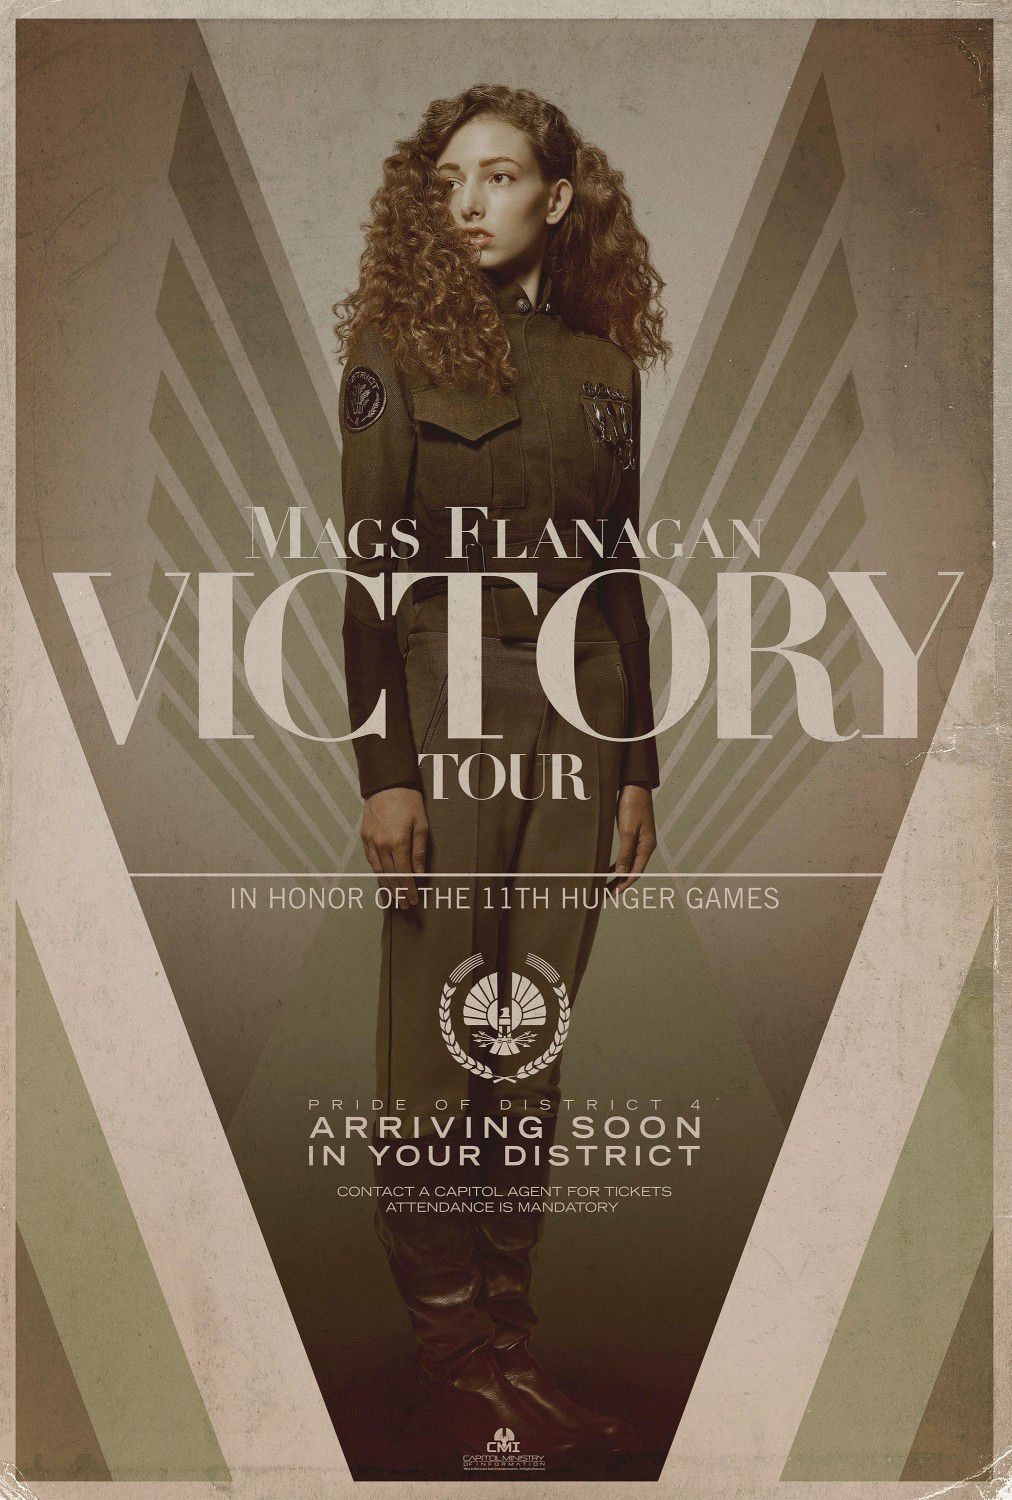 Mags Flanagan Victory tour